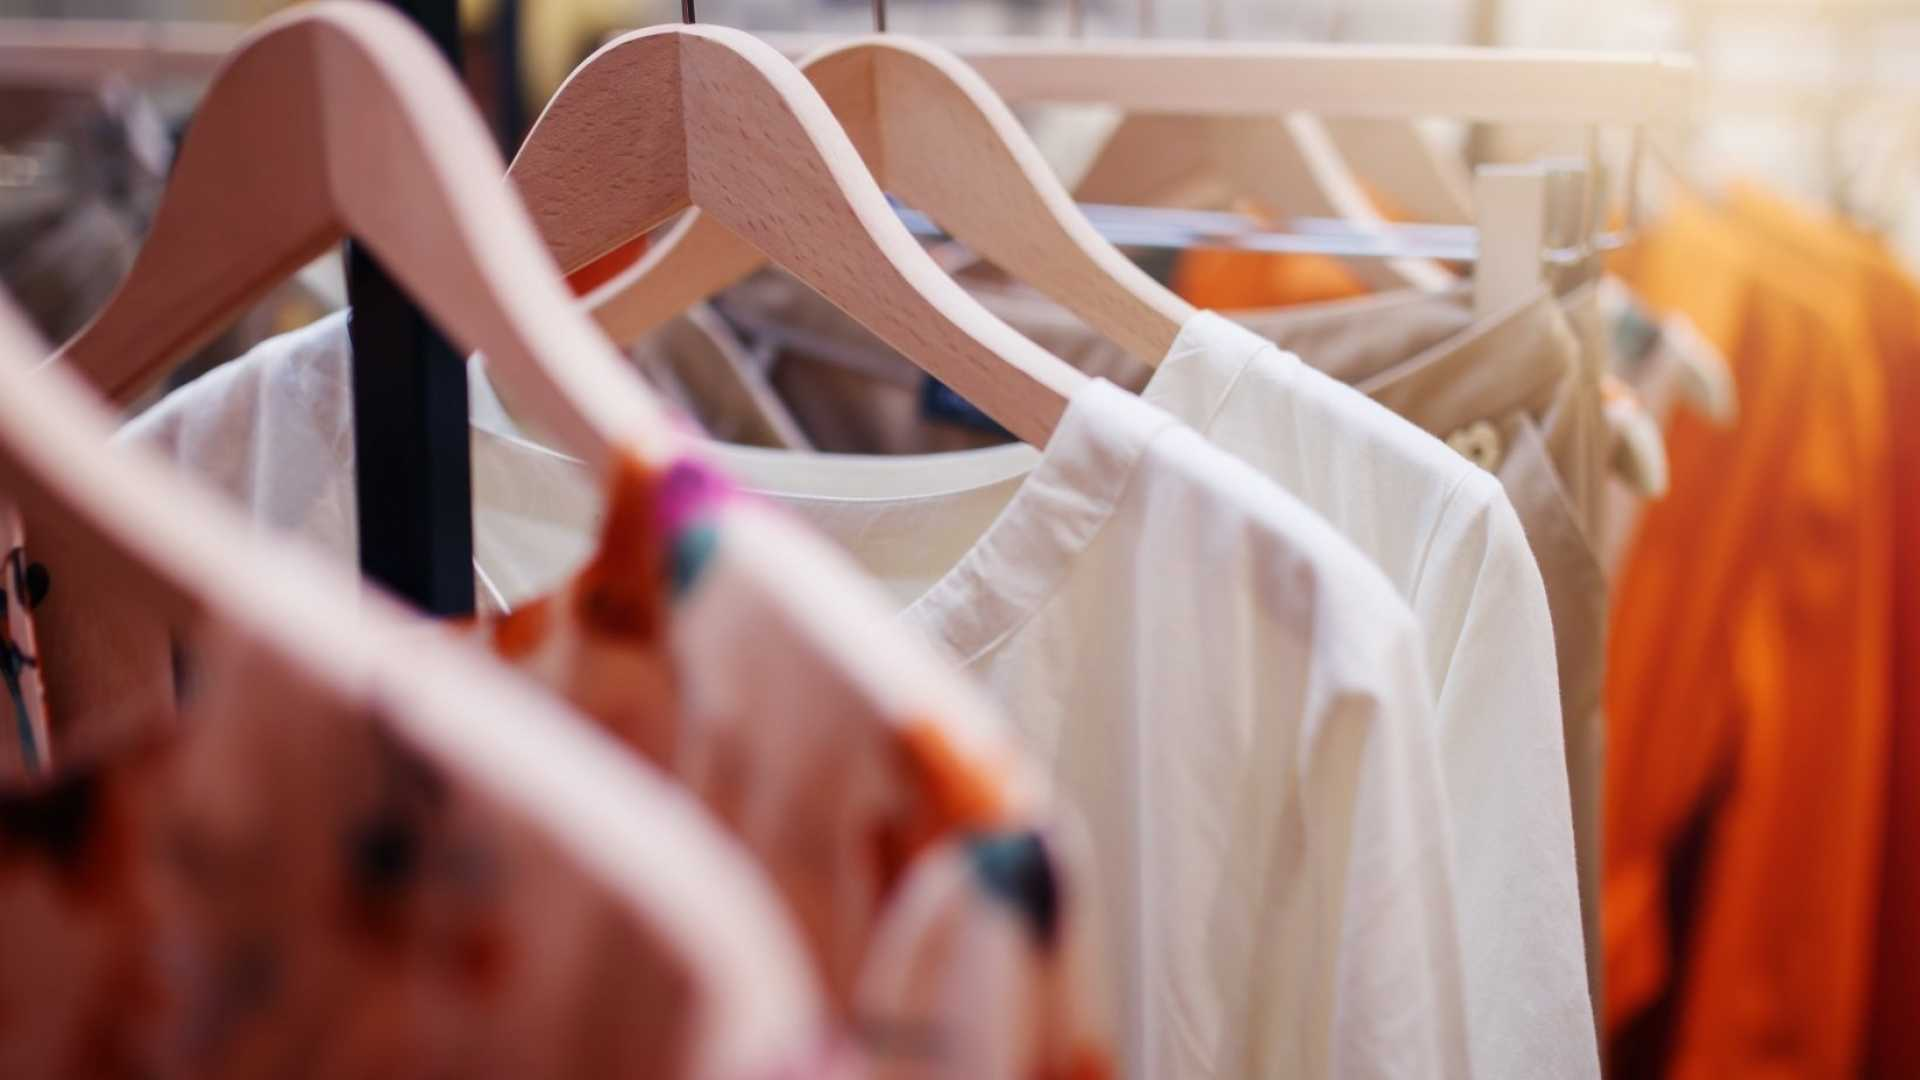 It's Pinterest Versus Amazon for the Future of Online Fashion Sales